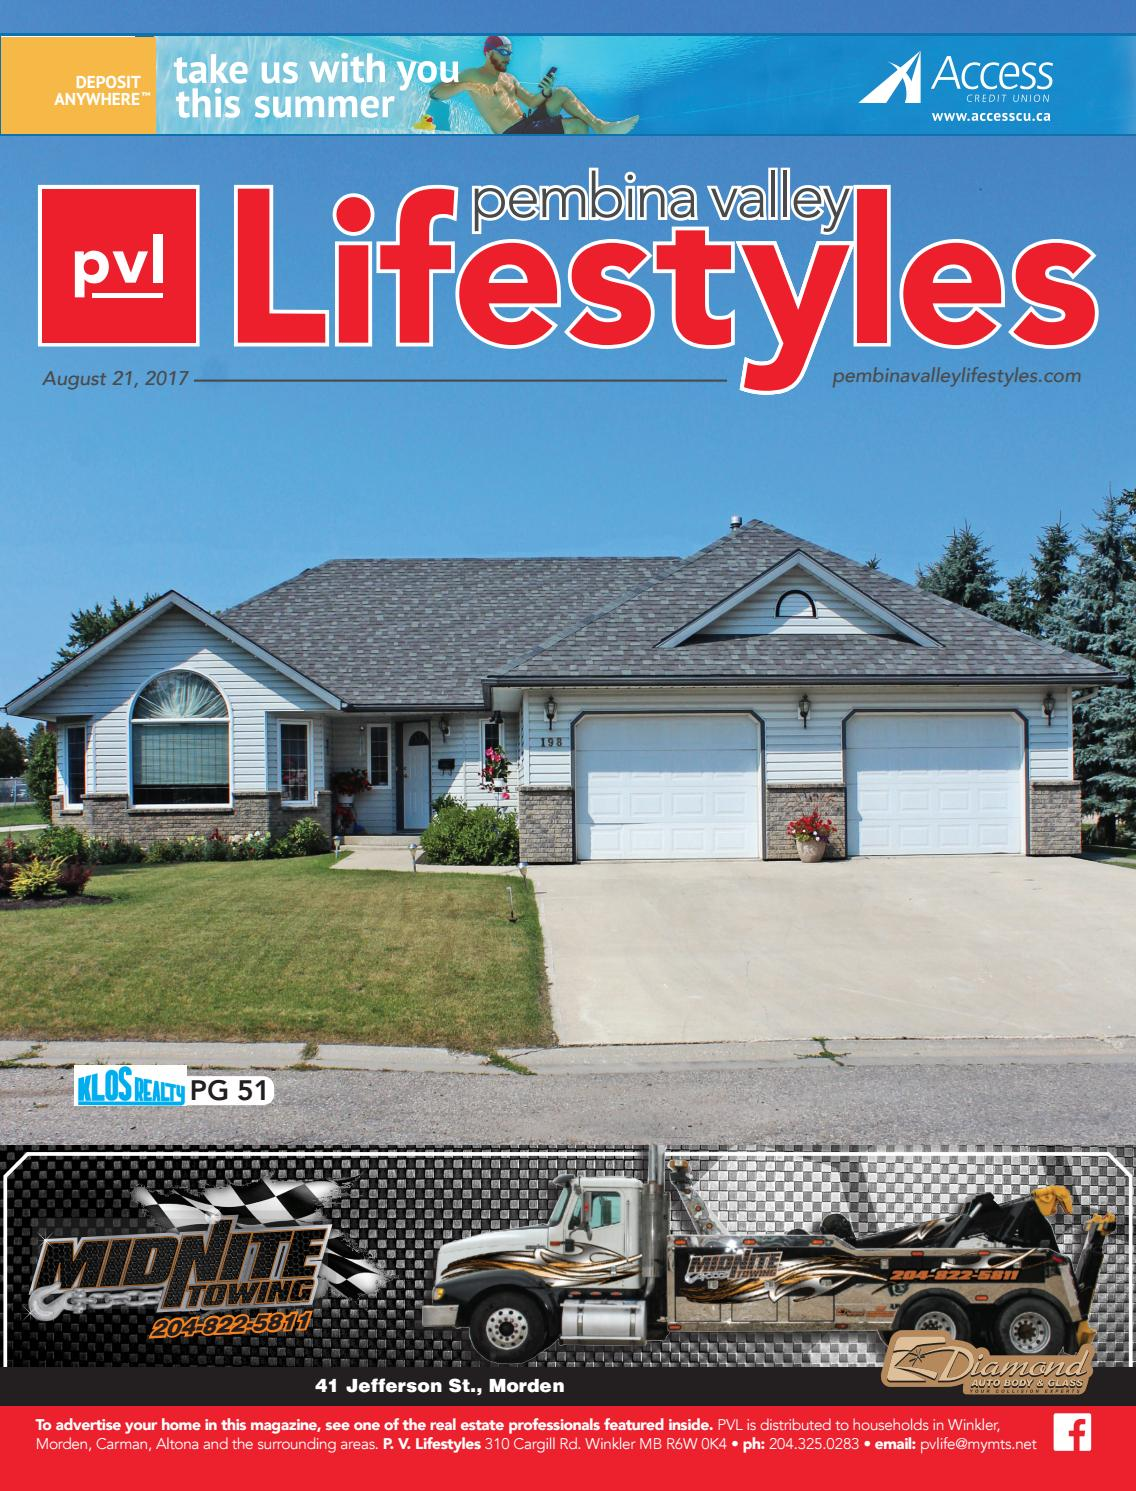 Lifestyles - August 21, 2017 by Pembina Valley Lifestyles - issuu